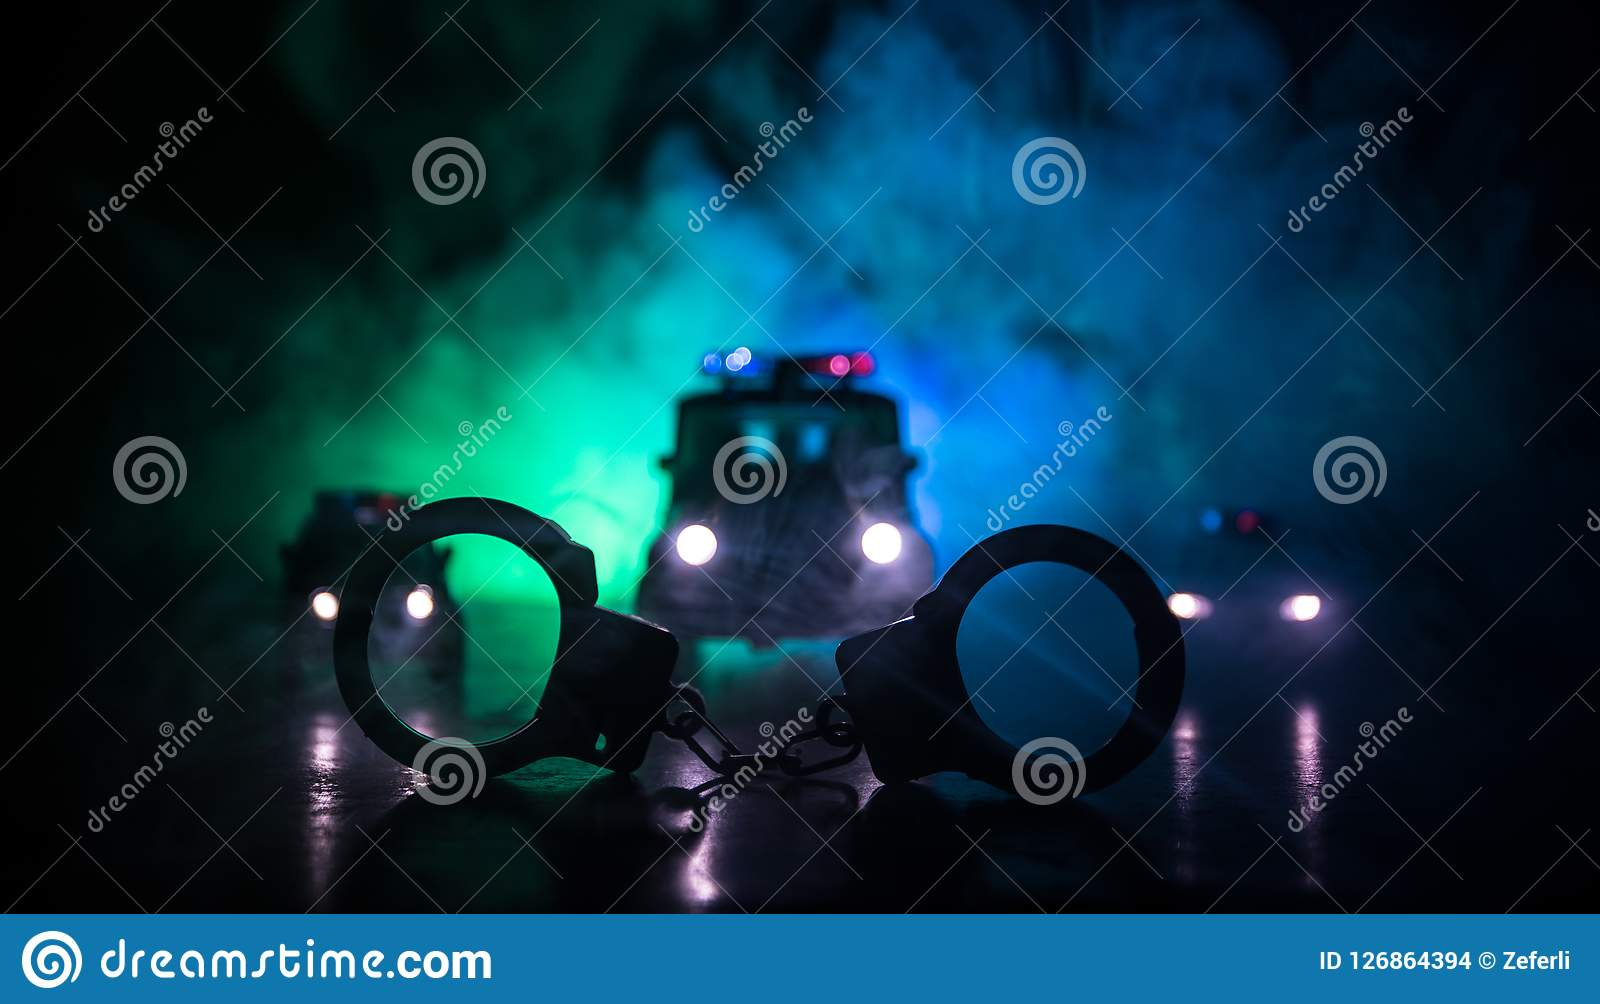 Closed Handcuffs On The Street Pavement At Night With Police Car Lights Stock Photo Image Of Crime Justice 126864394